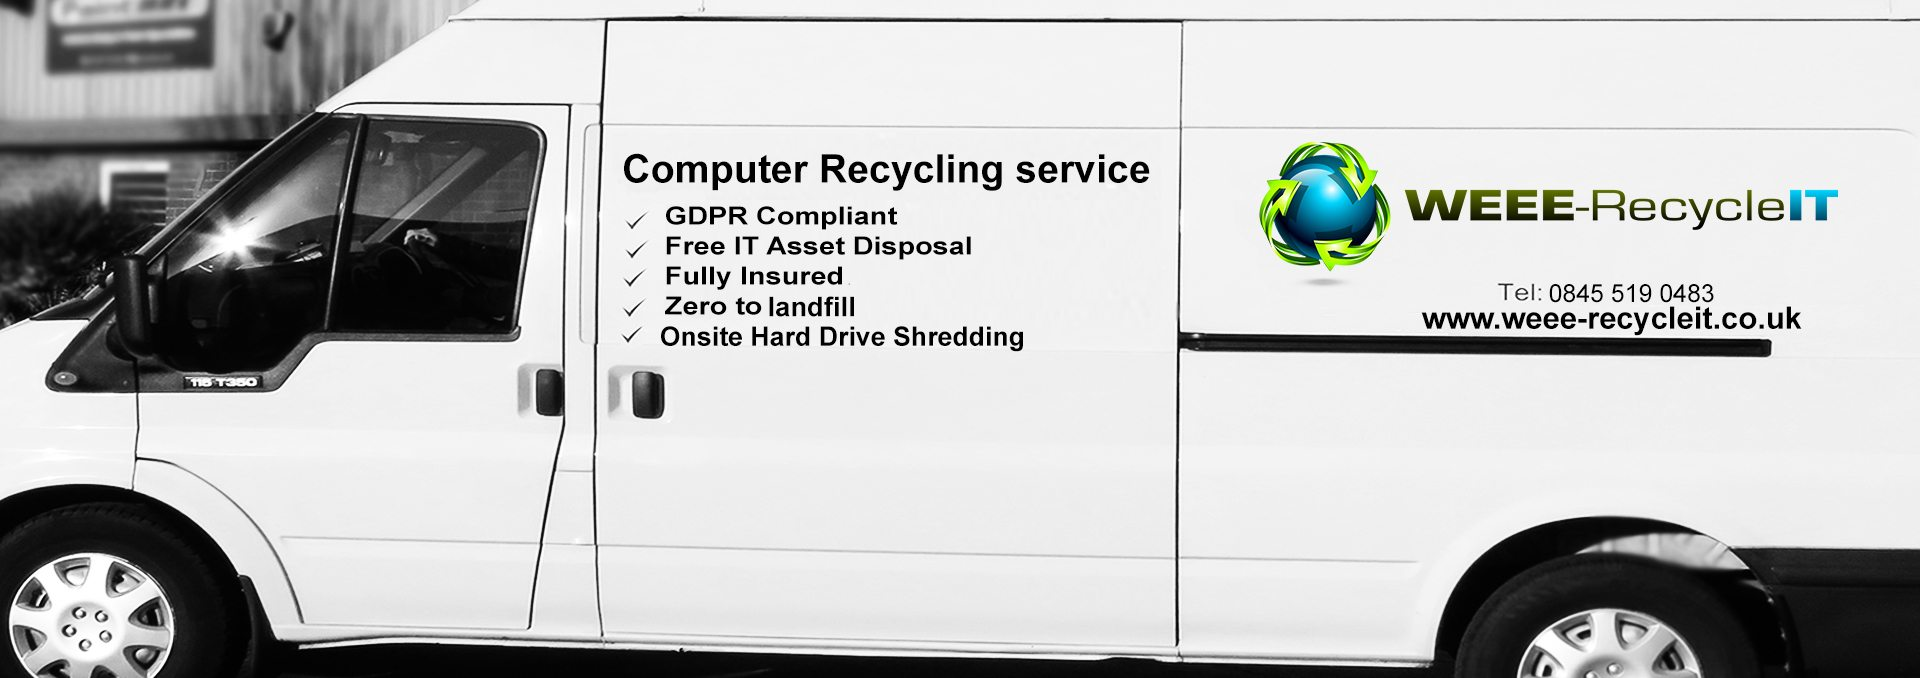 WEEE Recycle IT Van